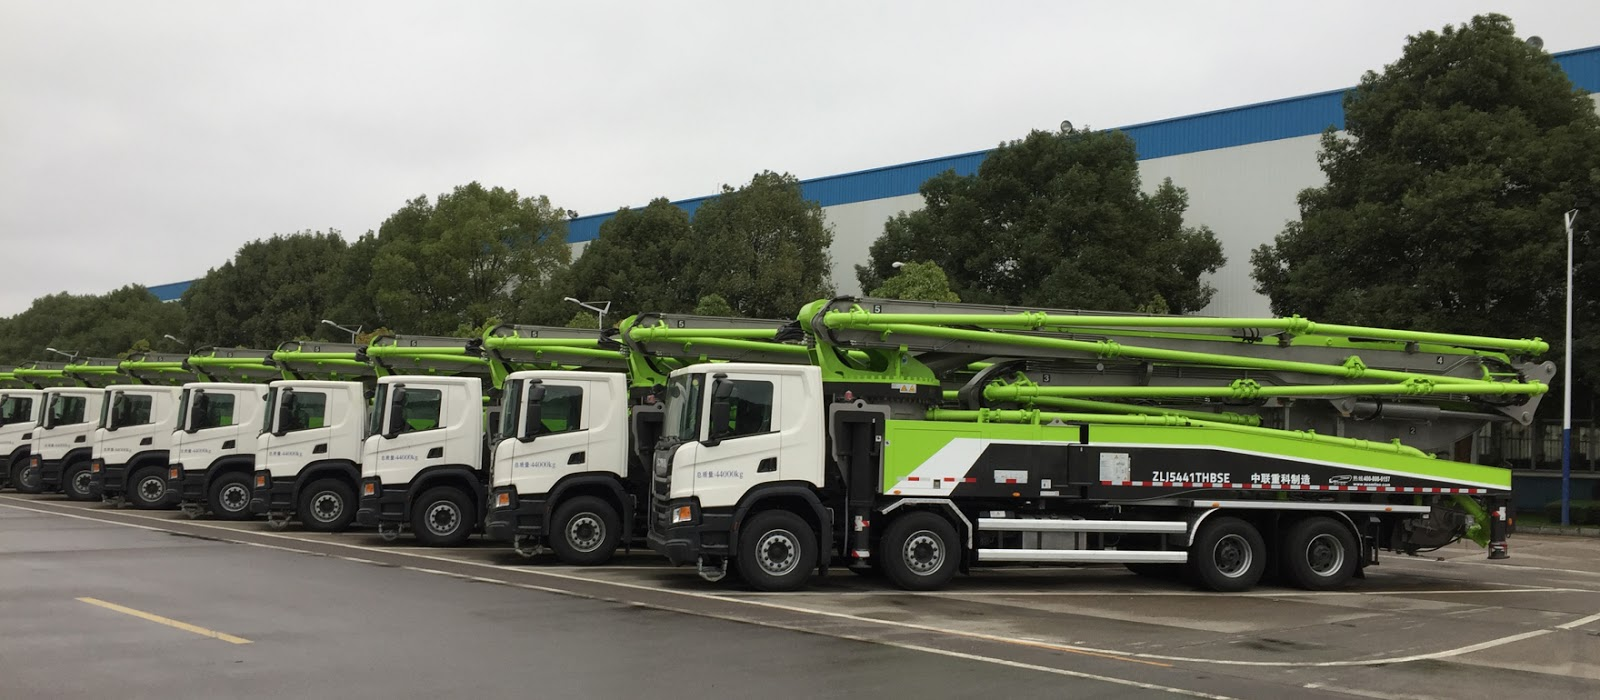 b697c0c0 Scania delivers 520 vehicles for Zoomlion's truck mounted pumps ...